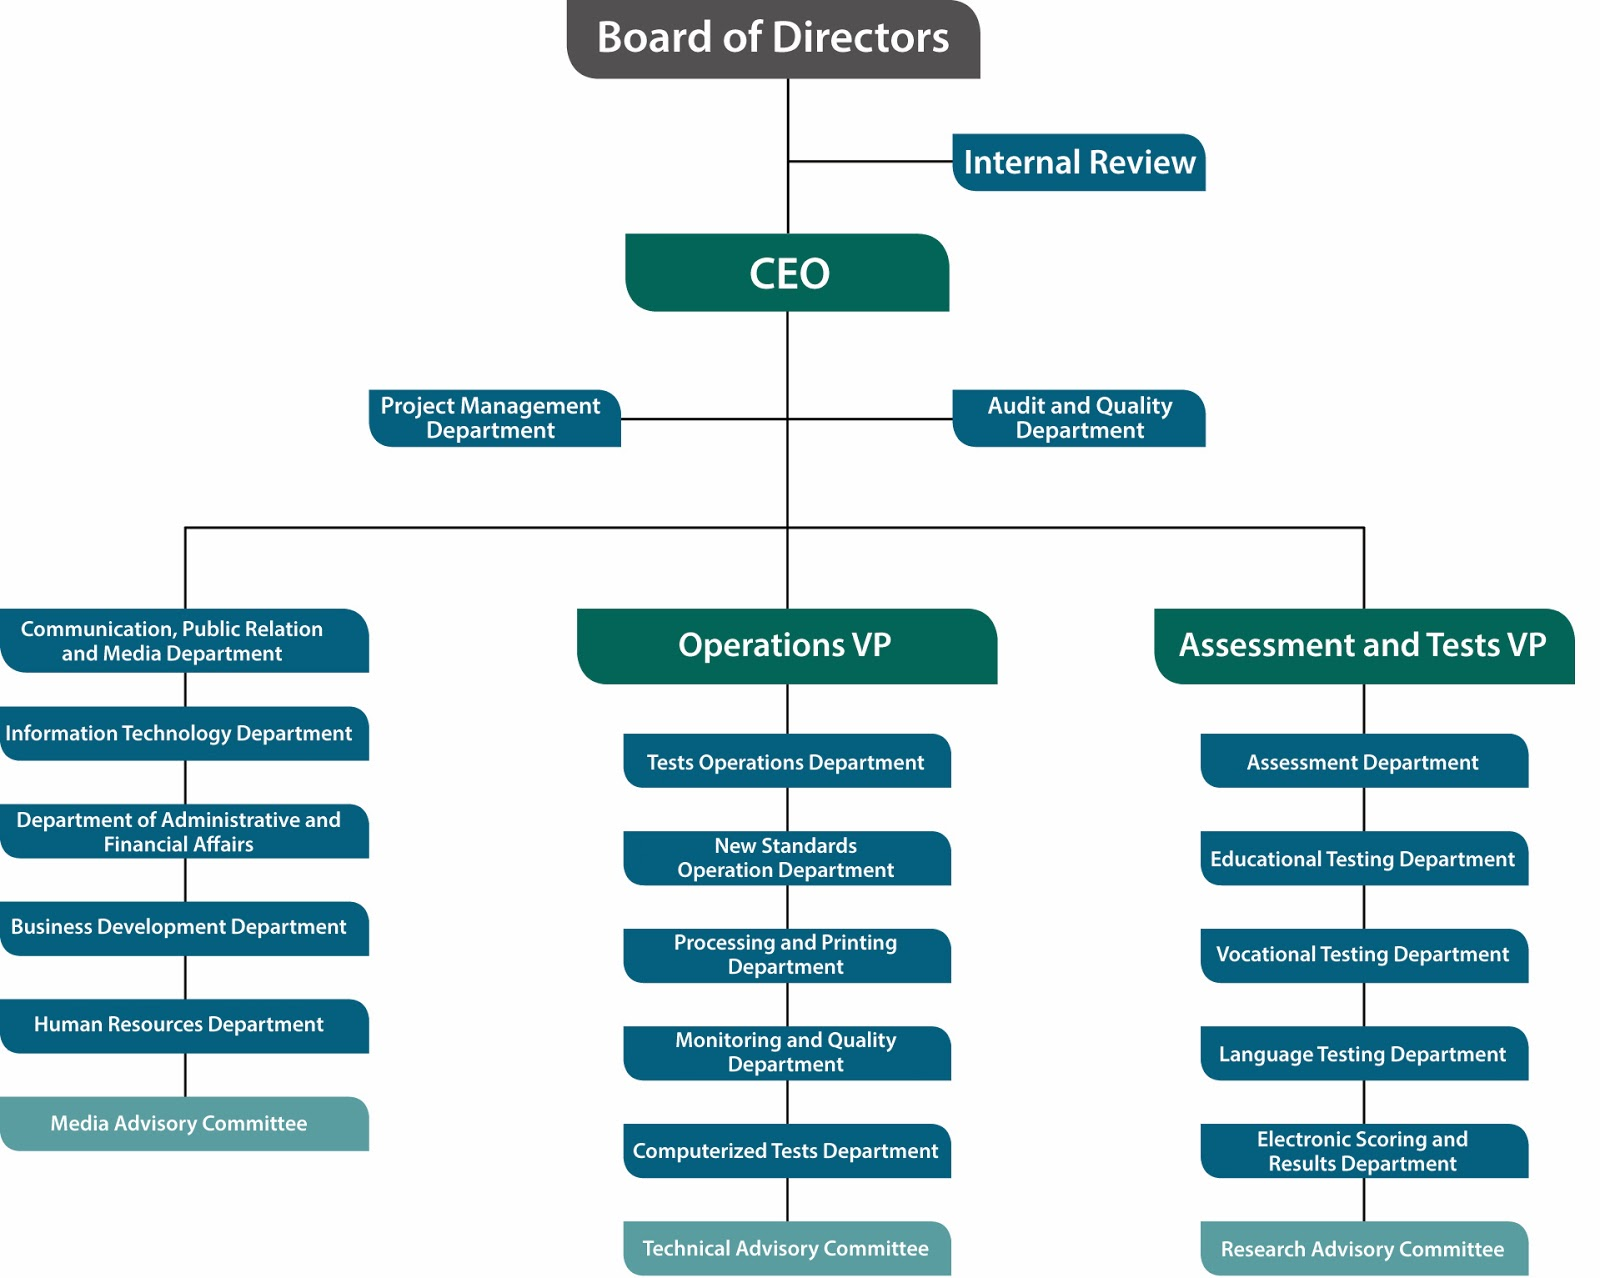 organisational structure An organizational structure defines the scope of acceptable behavior within an organization, its lines of authority and accountability, and to some extent the organization's relationship with its external environment.